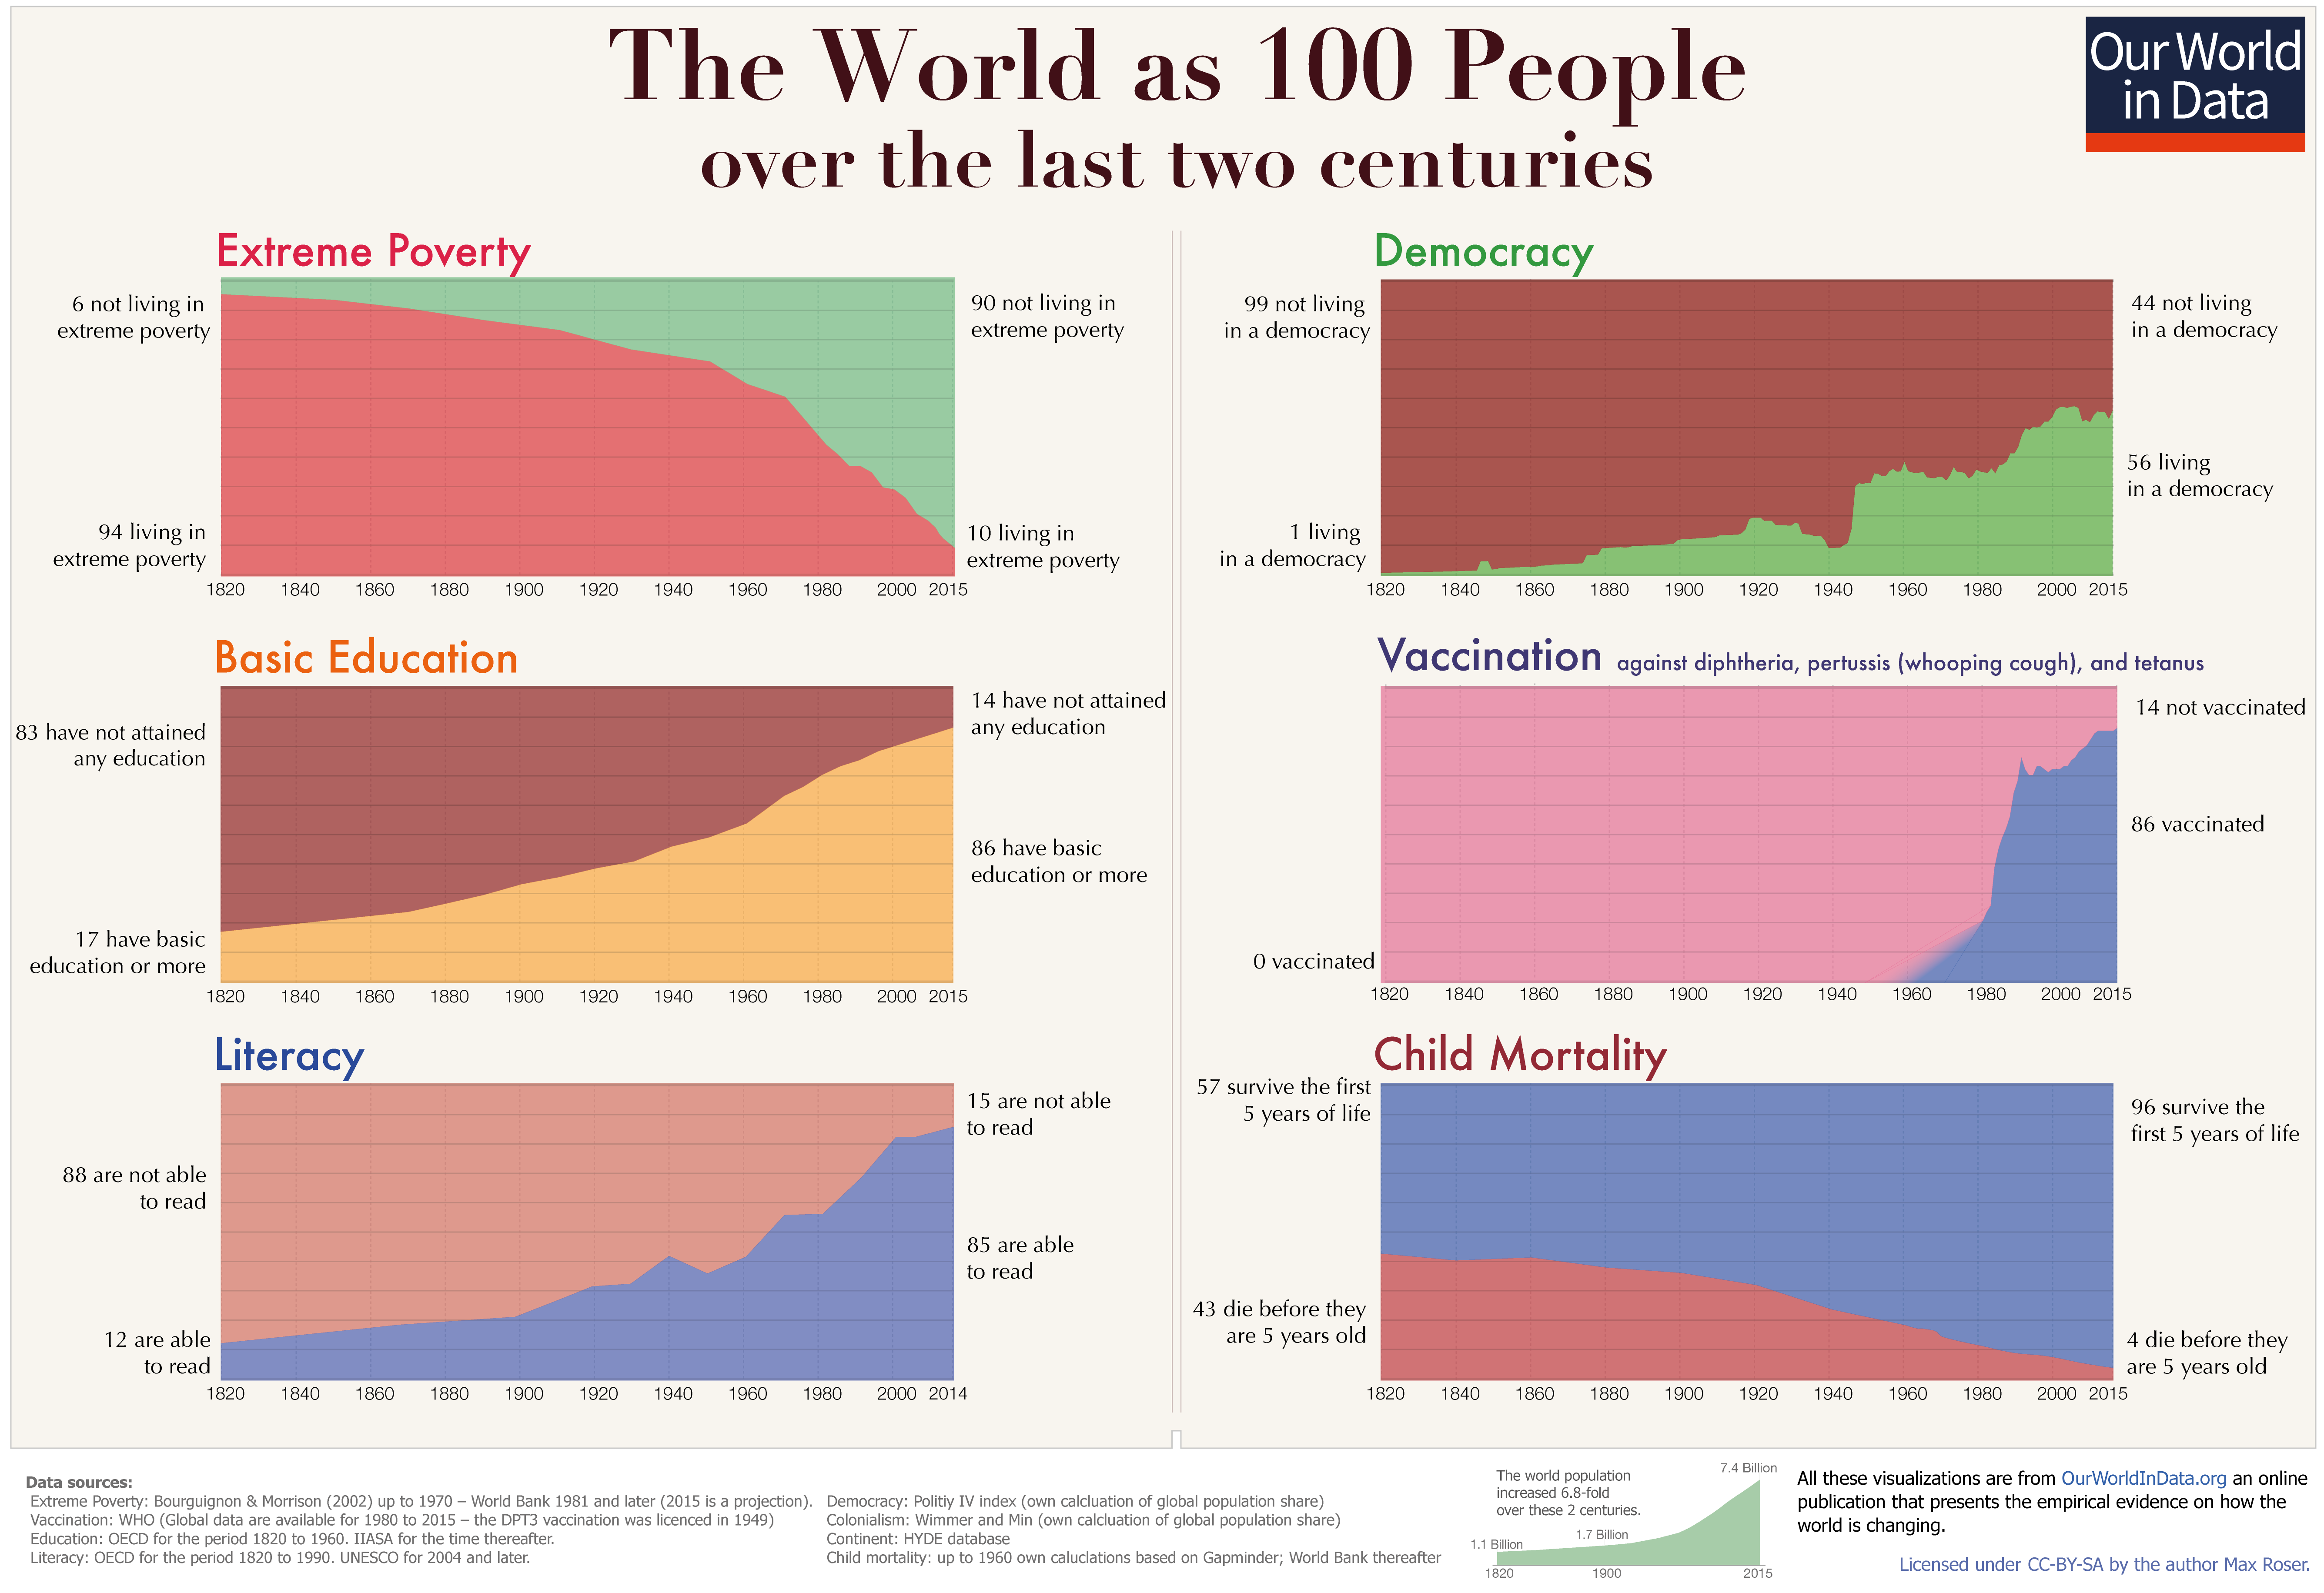 Graphs showing improvements in the human condition over the last 200 years